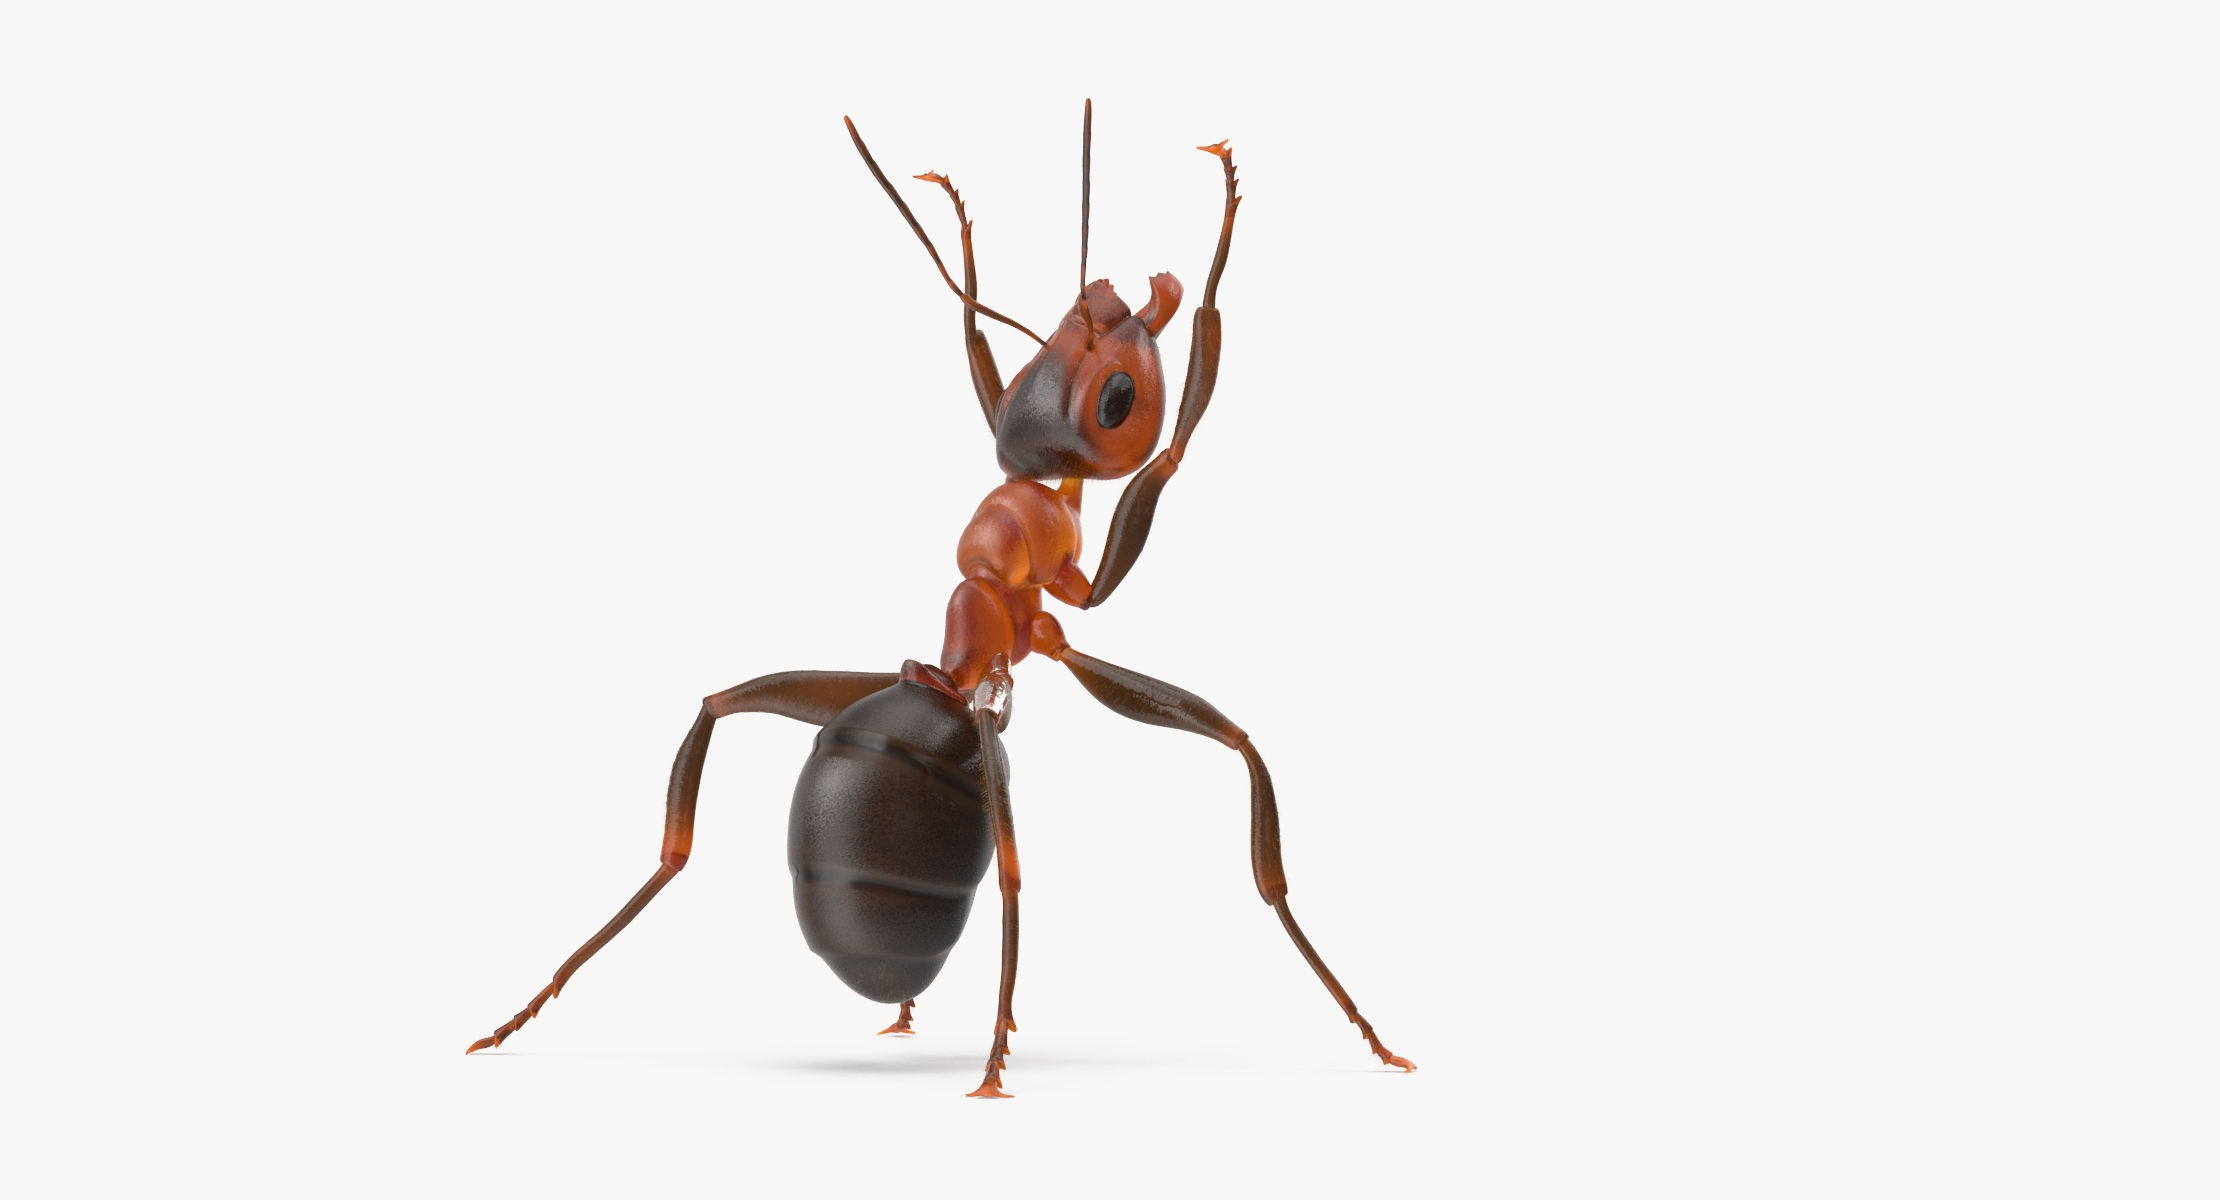 Ant Holding Pose - reel 1